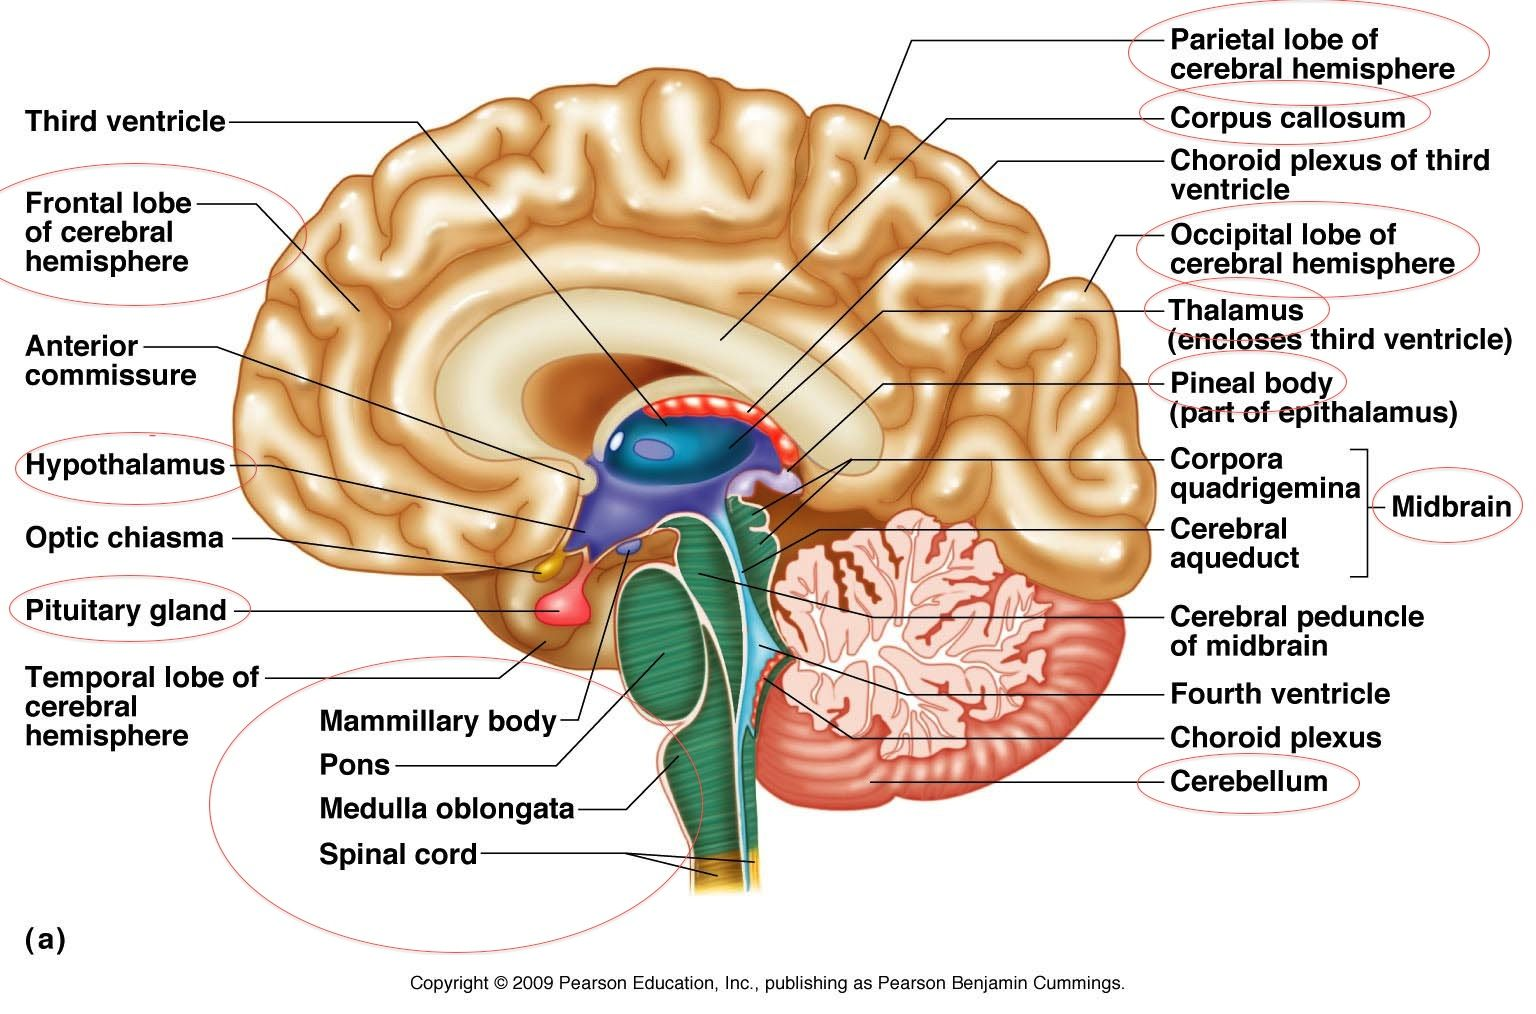 Pin by Amy Yee on Anatomy | Pinterest | Brain diagram and Brain